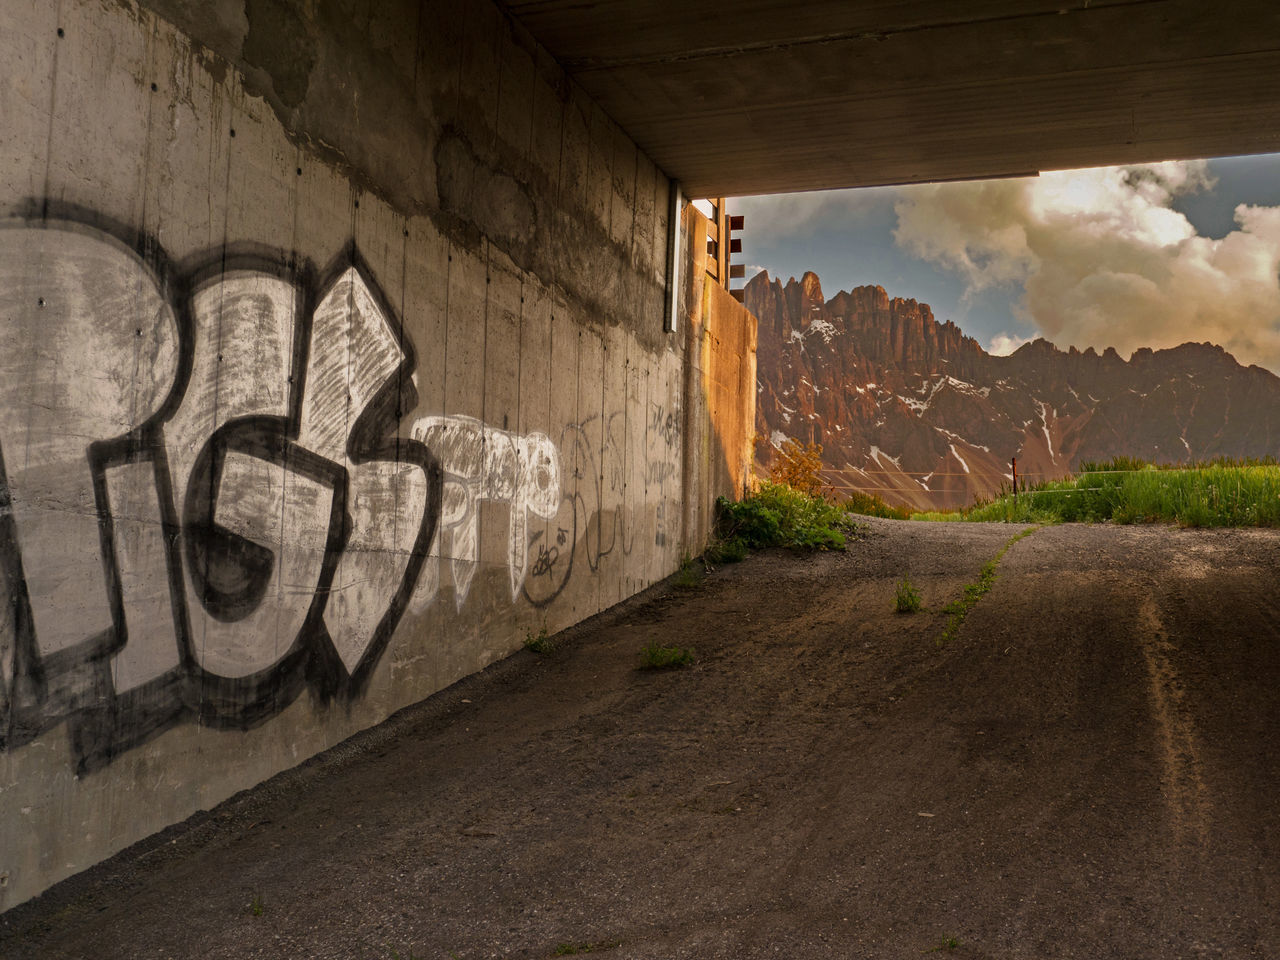 a graffity in opposite to the great dolomite panorama Alpen Alpes Bridge - Man Made Structure Built Structure Clouds And Sky Day Different Is Better . ❤ Different Points Of View Dolomites Dolomites, Italy Graffiti Mountains No People Nova Levante Outdoors Social Issues Spray Paint Streetphotography Summer Evening Summer Views Südtirol Welschnofen